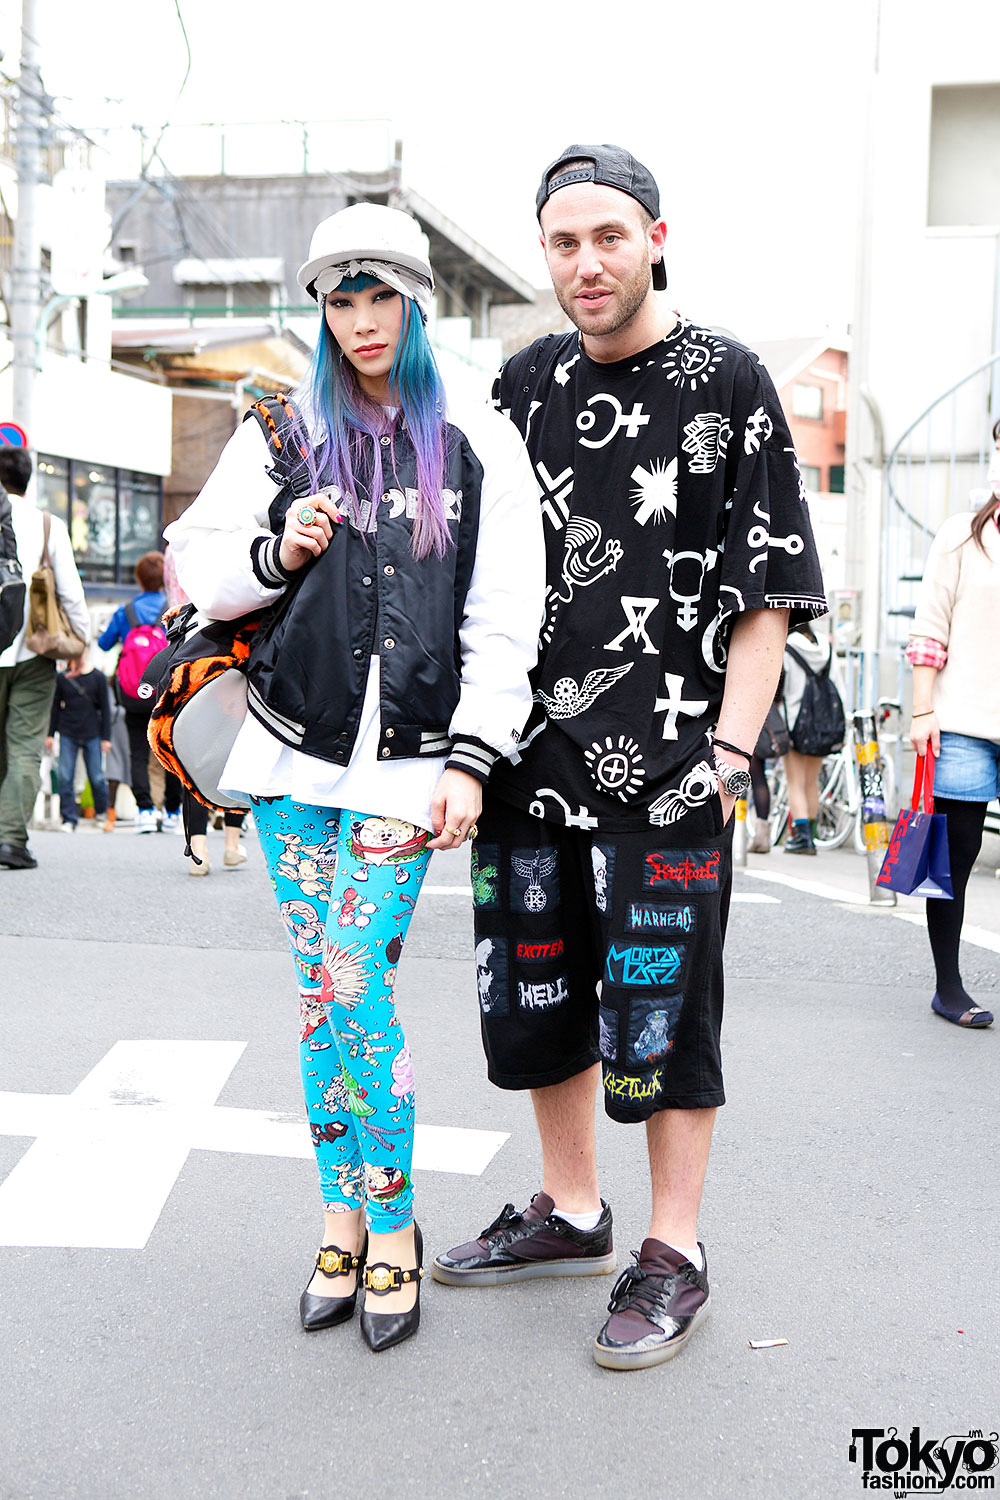 Mademoiselle yulia in jeremy scott giza on the street in harajuku w ktz 39 s mathew Japanese fashion style icon